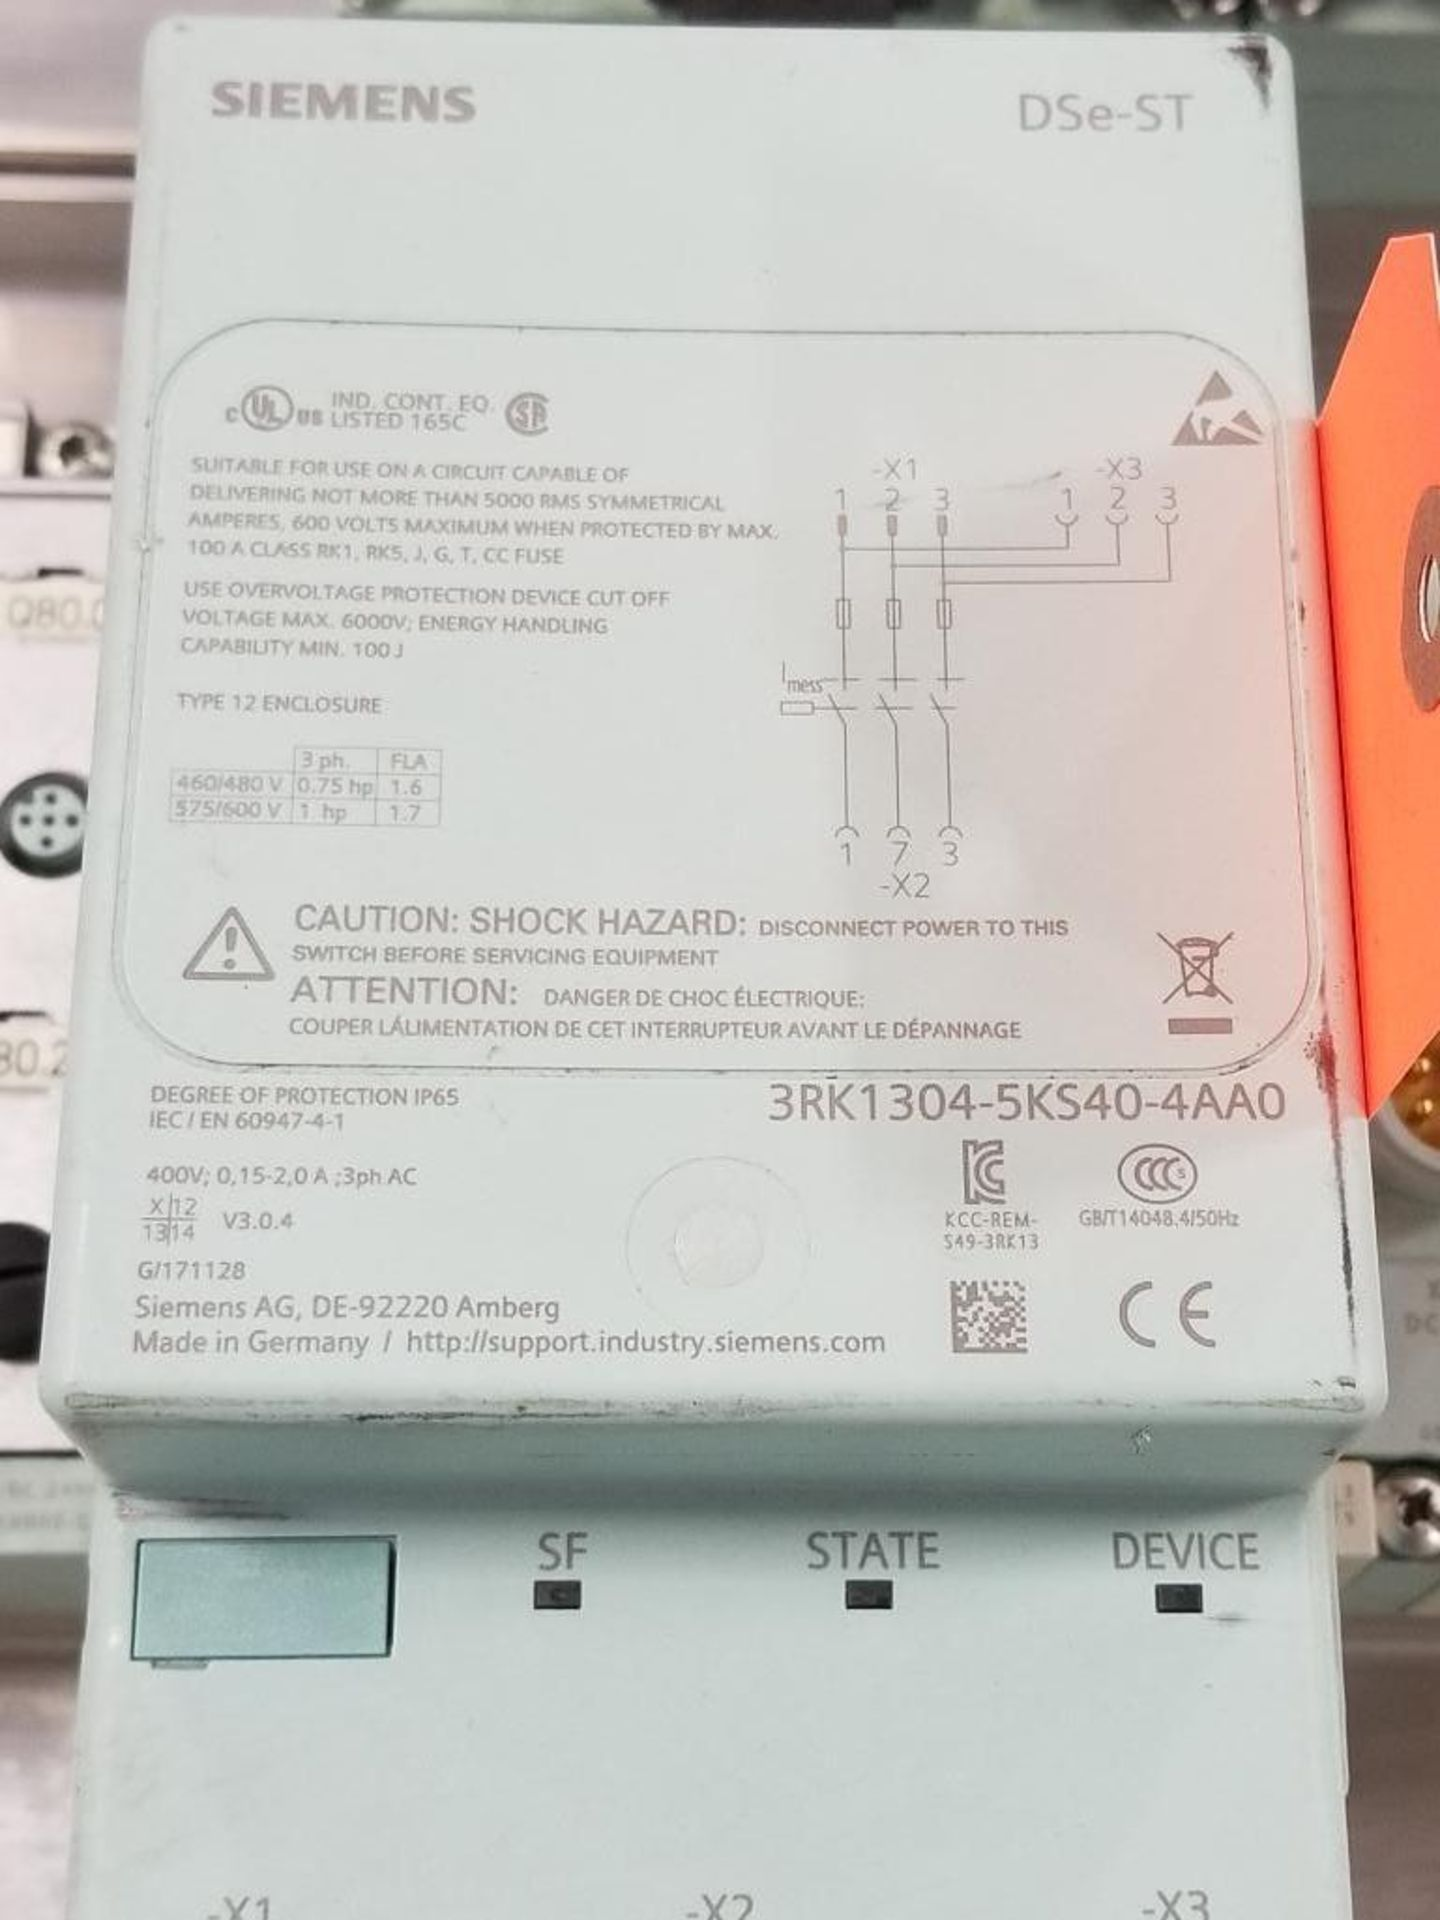 Siemens DSe-ST 3RK1304-5KS40-4AA0 disconnect module with flow control line. - Image 2 of 5